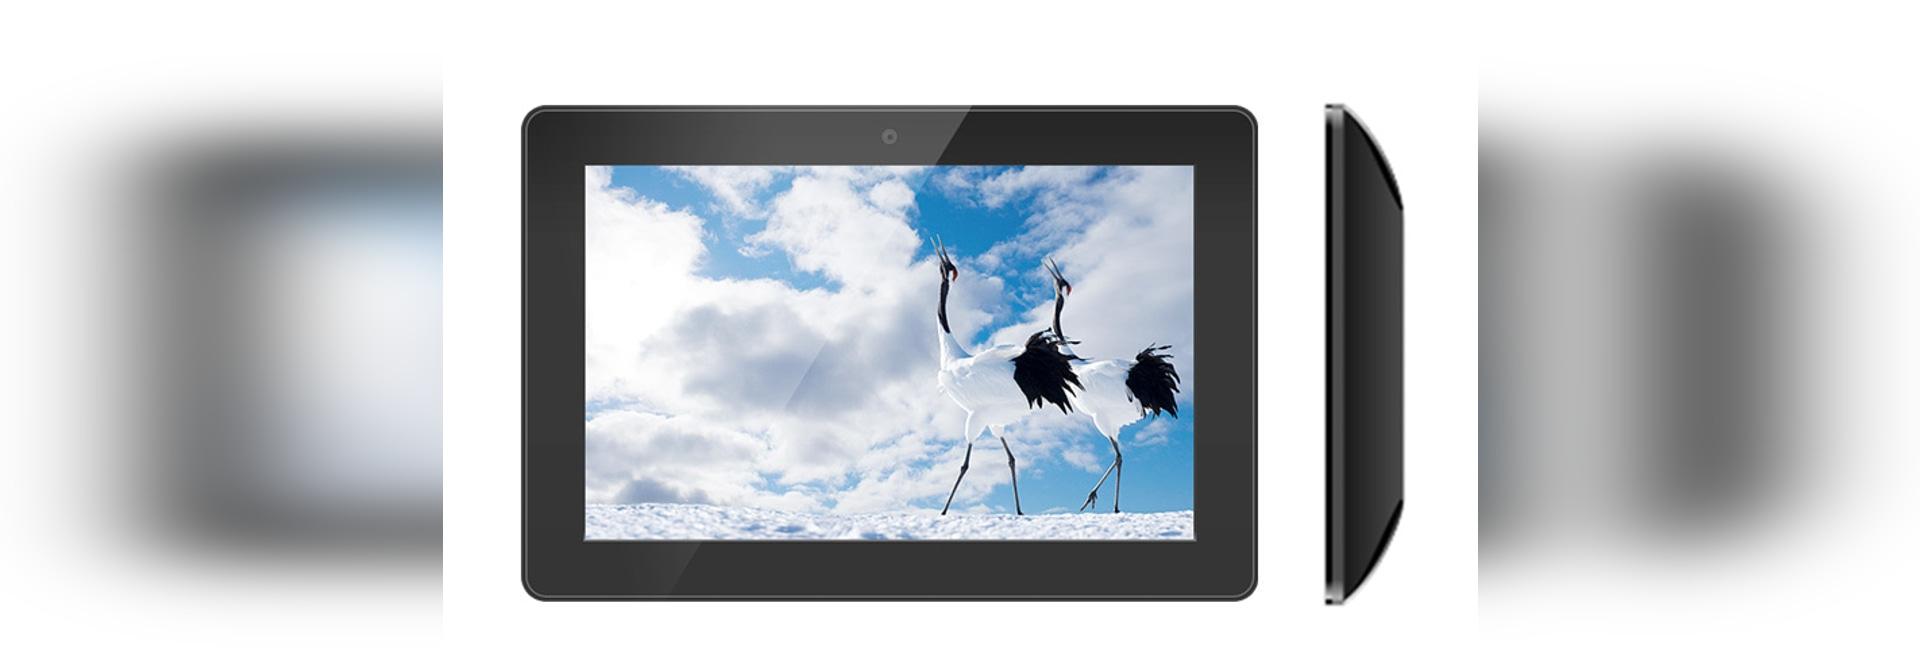 wechselwirkender PC Android - Tablet Touch Screen 3G WiFi